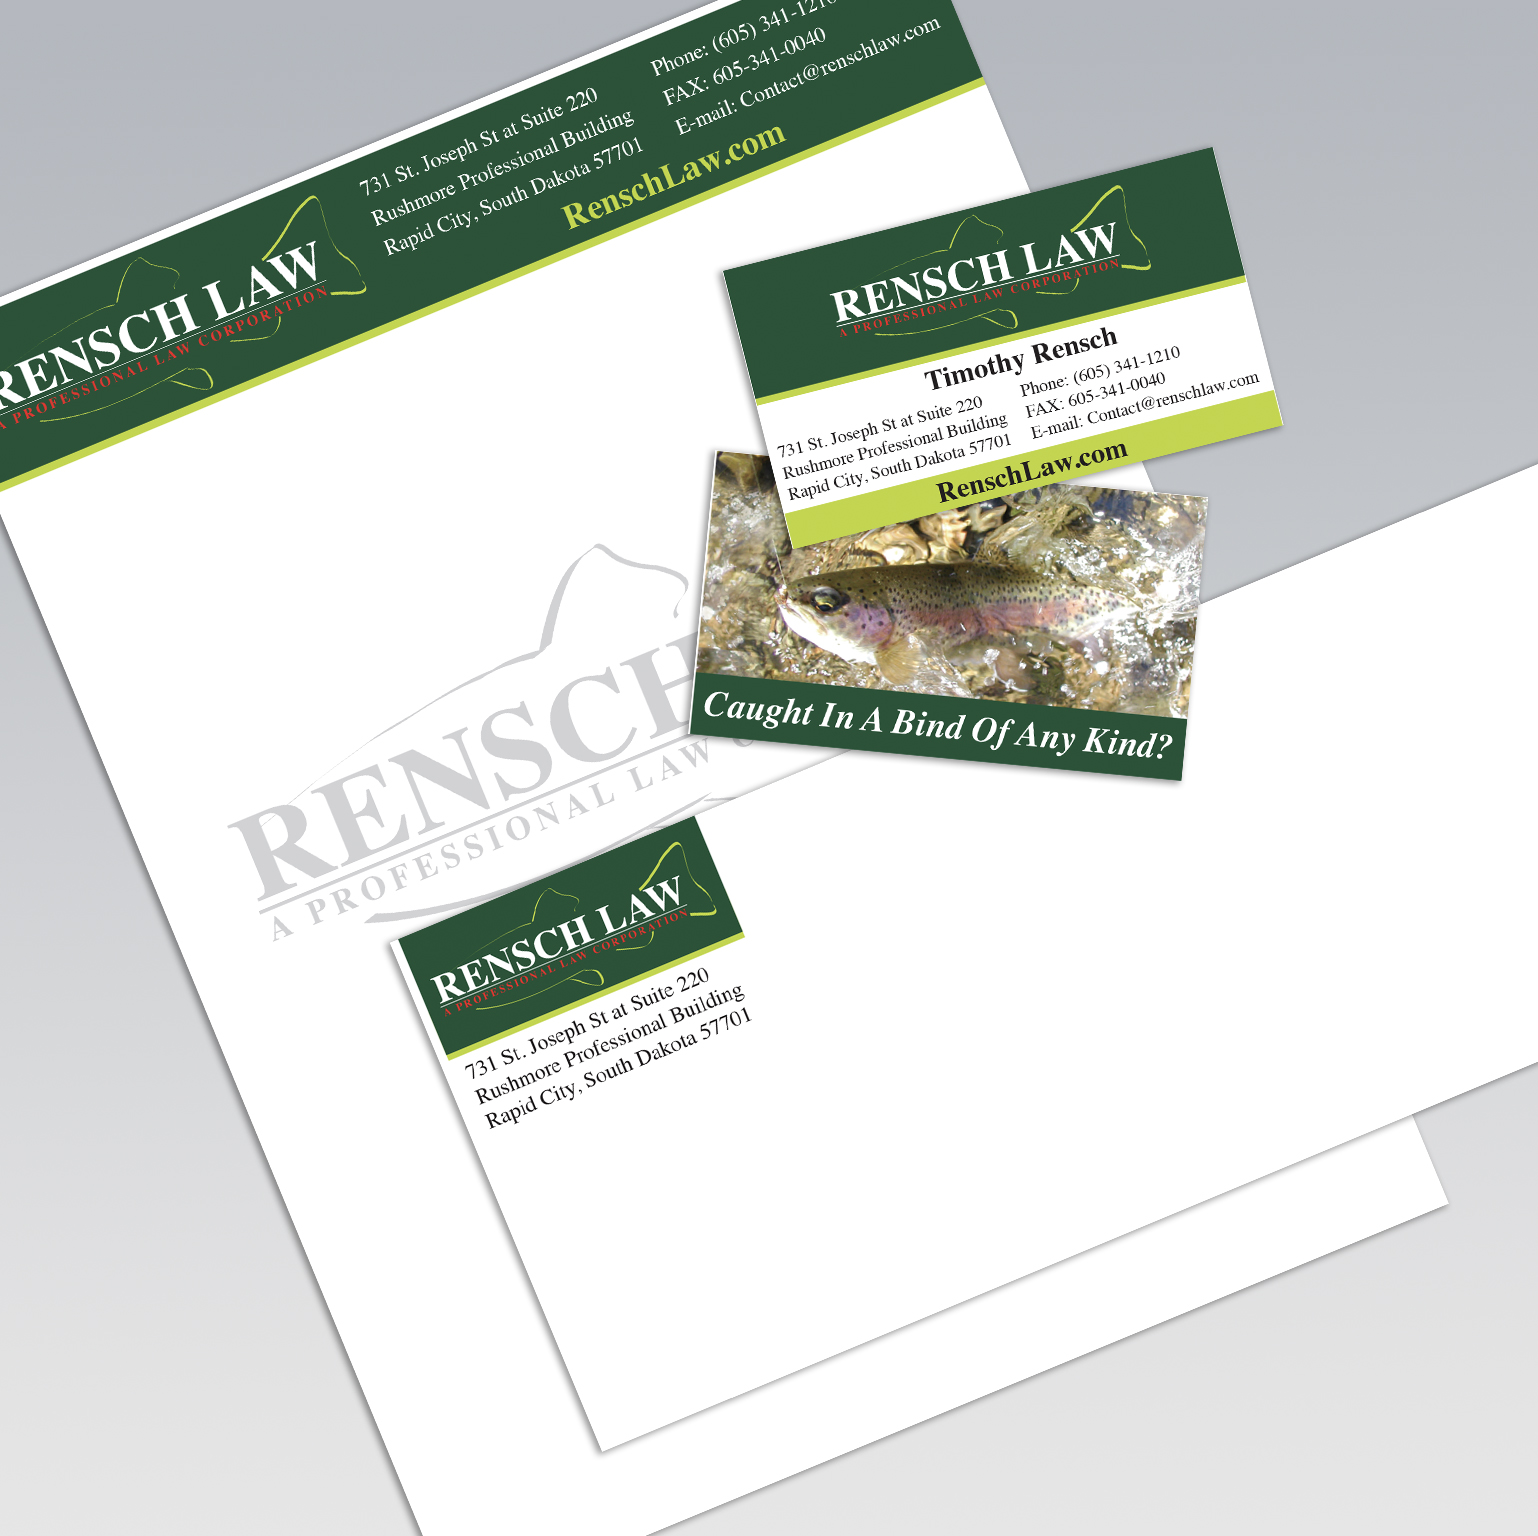 Rensch Law Branding - Dot Marketing and Website Design